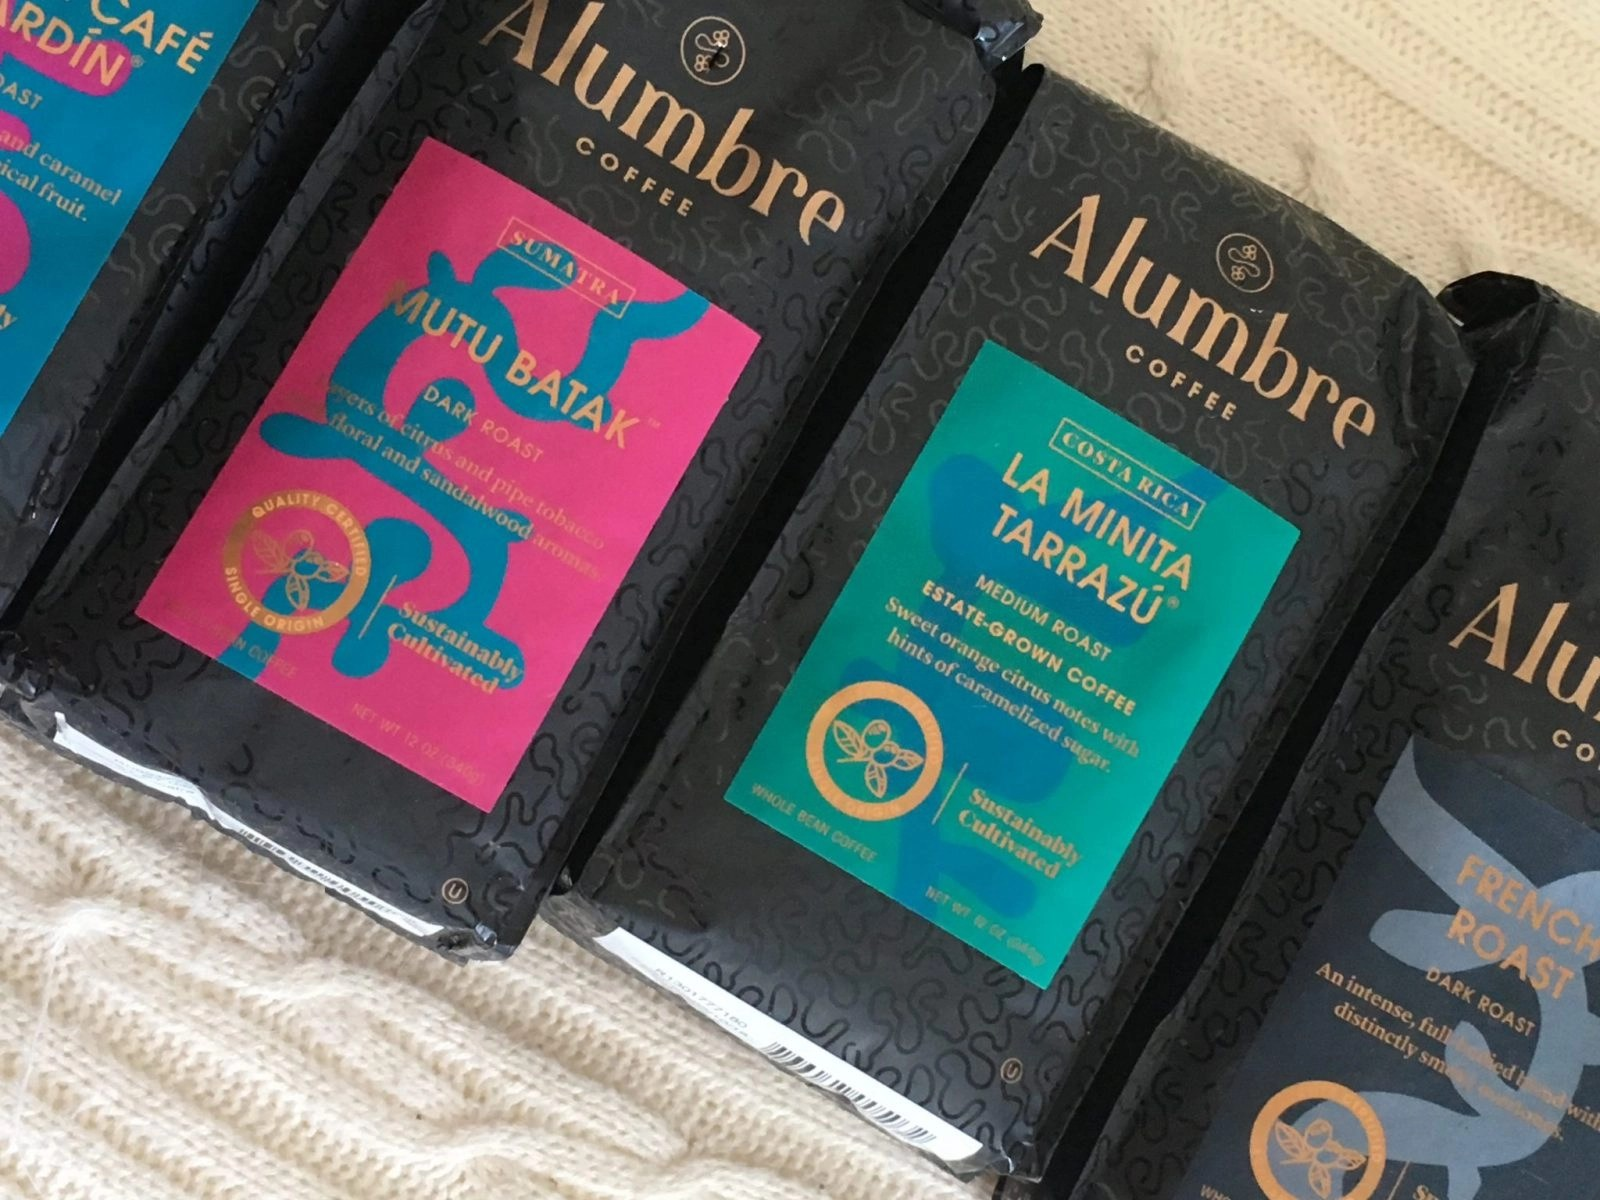 Alumbre Coffee Bags Up Close